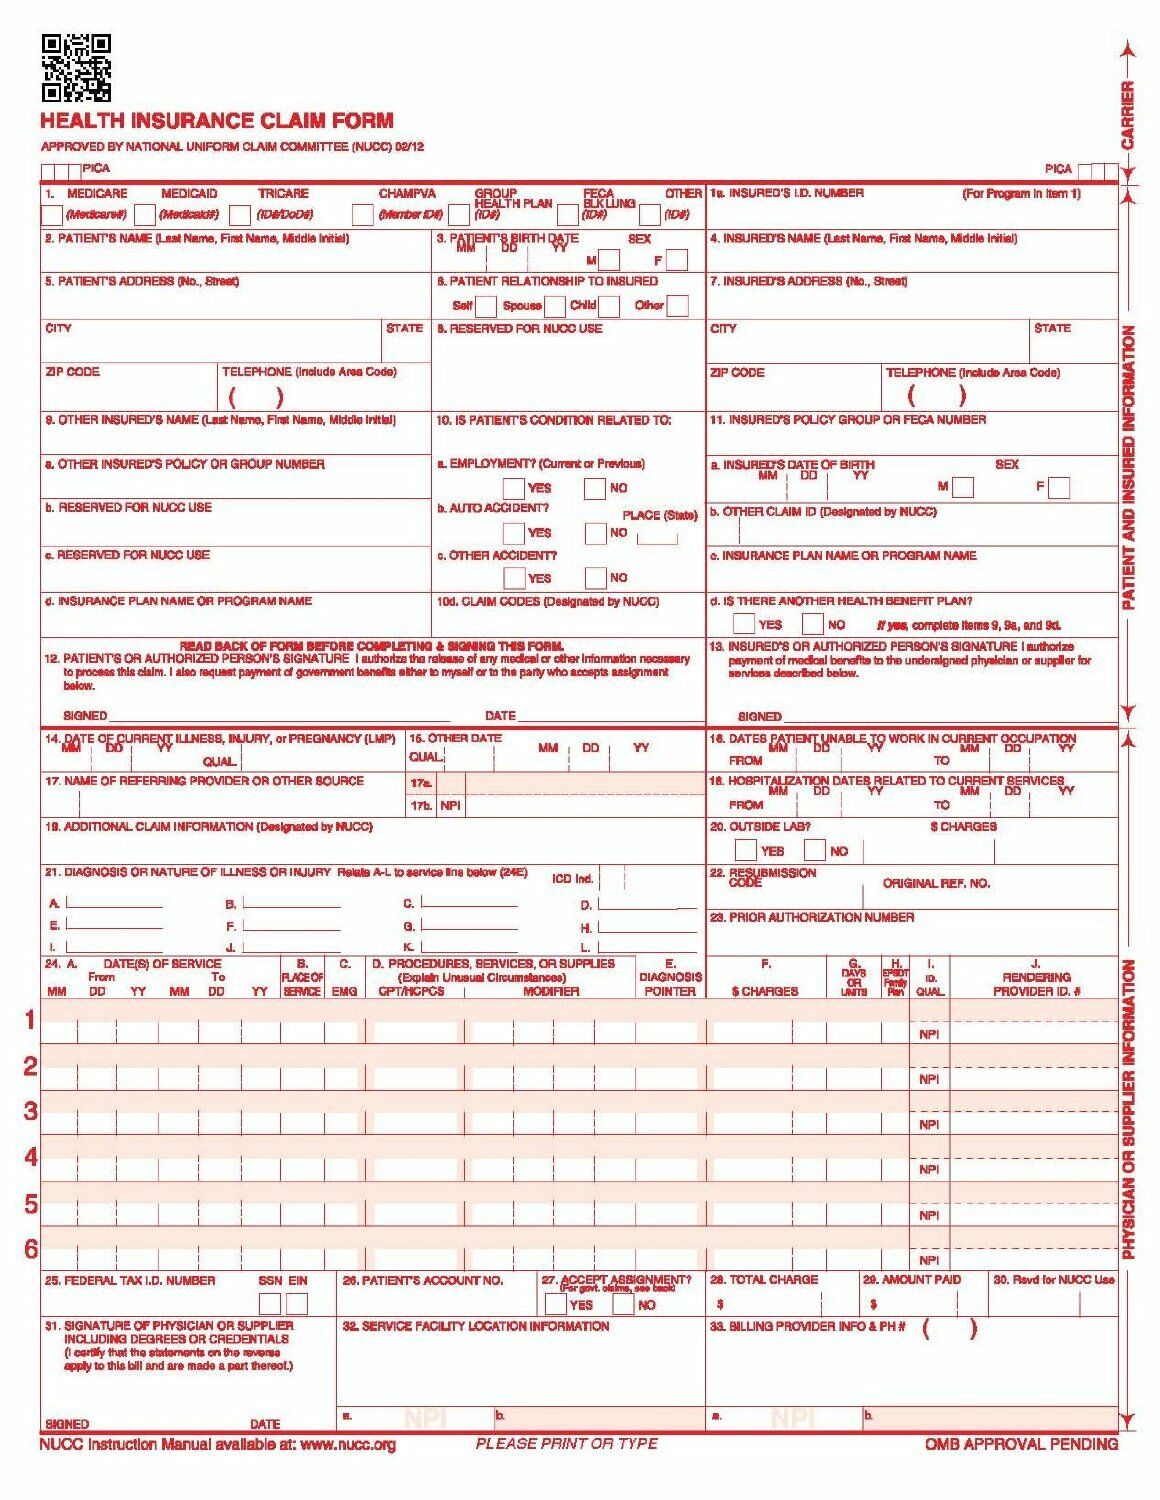 NEW CMS 1500 HCFA Health Insurance Claim Forms (Version 02/12) 500 Forms 2